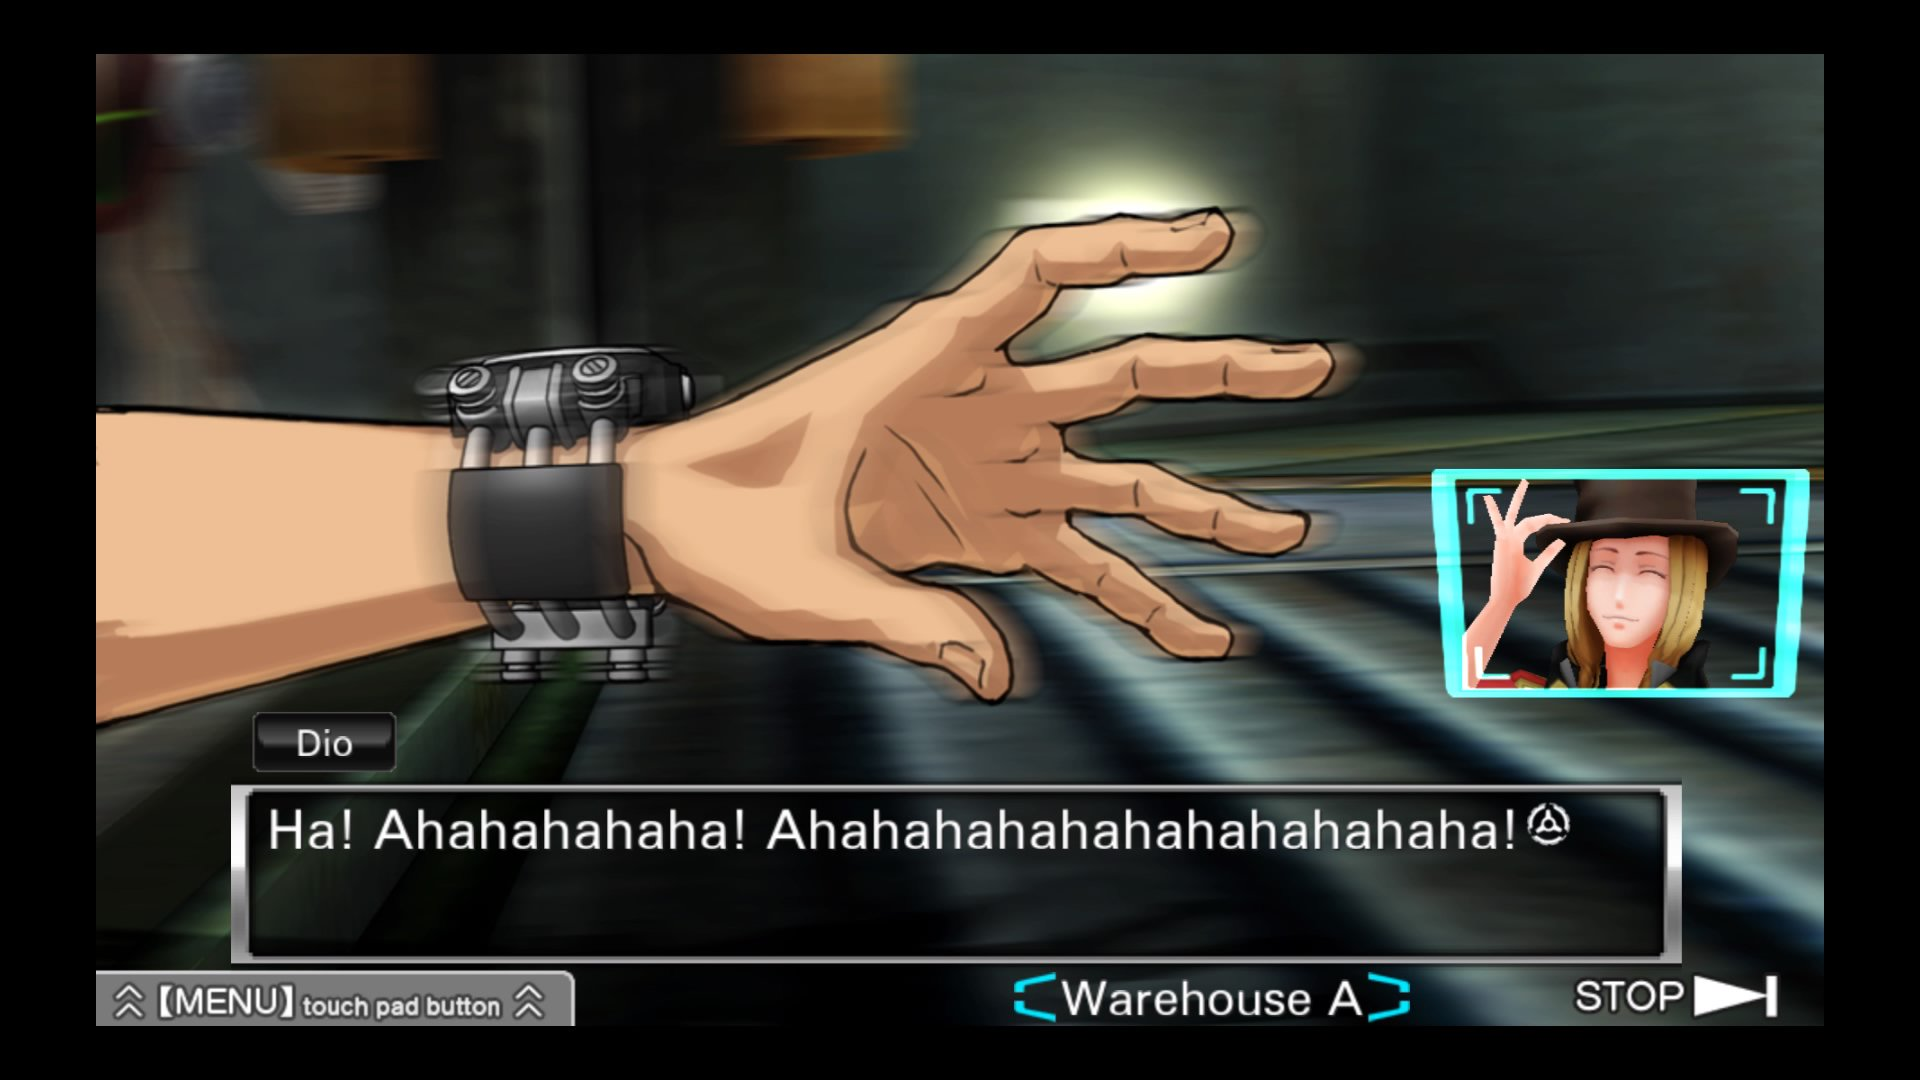 A video-game screenshot showing a hand reaching for someting, while a grinning, top-hat-wearing man labeled 'Dio' says 'Ahahahahahahahaha!'.